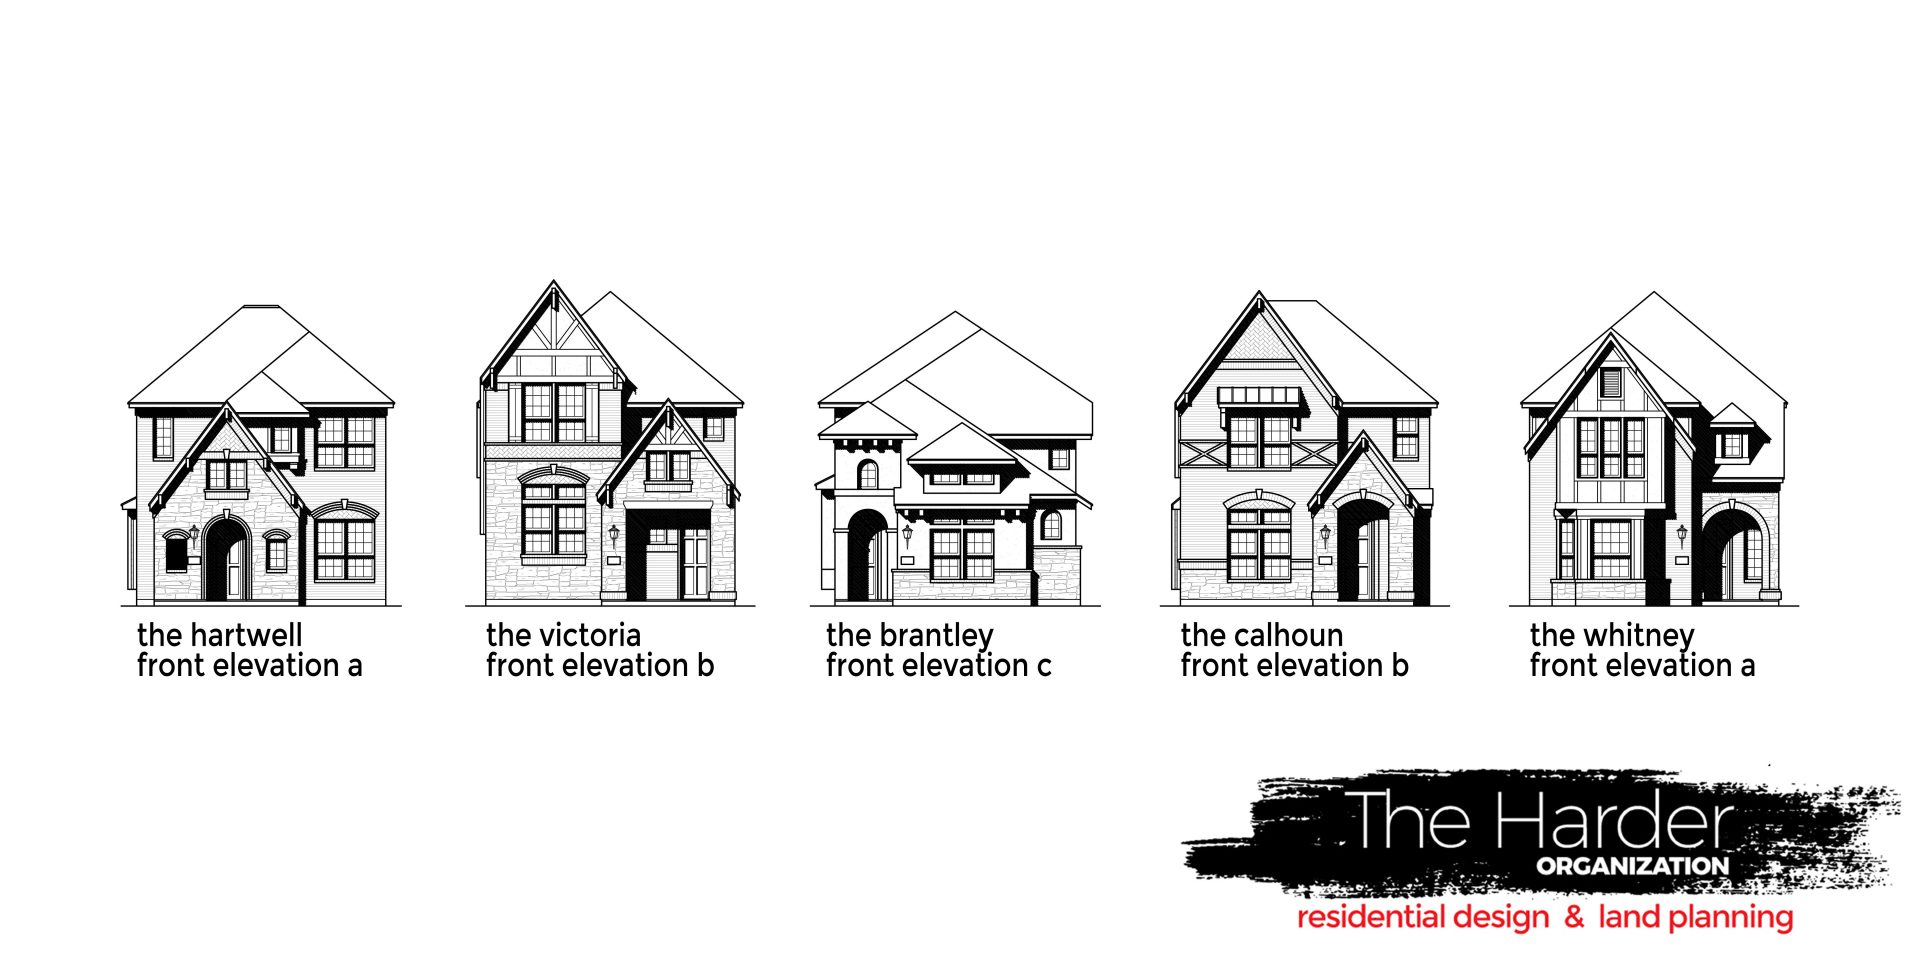 J:(Drawings)Meridian homes25x75 - zero - rear loaded25x75 Ze